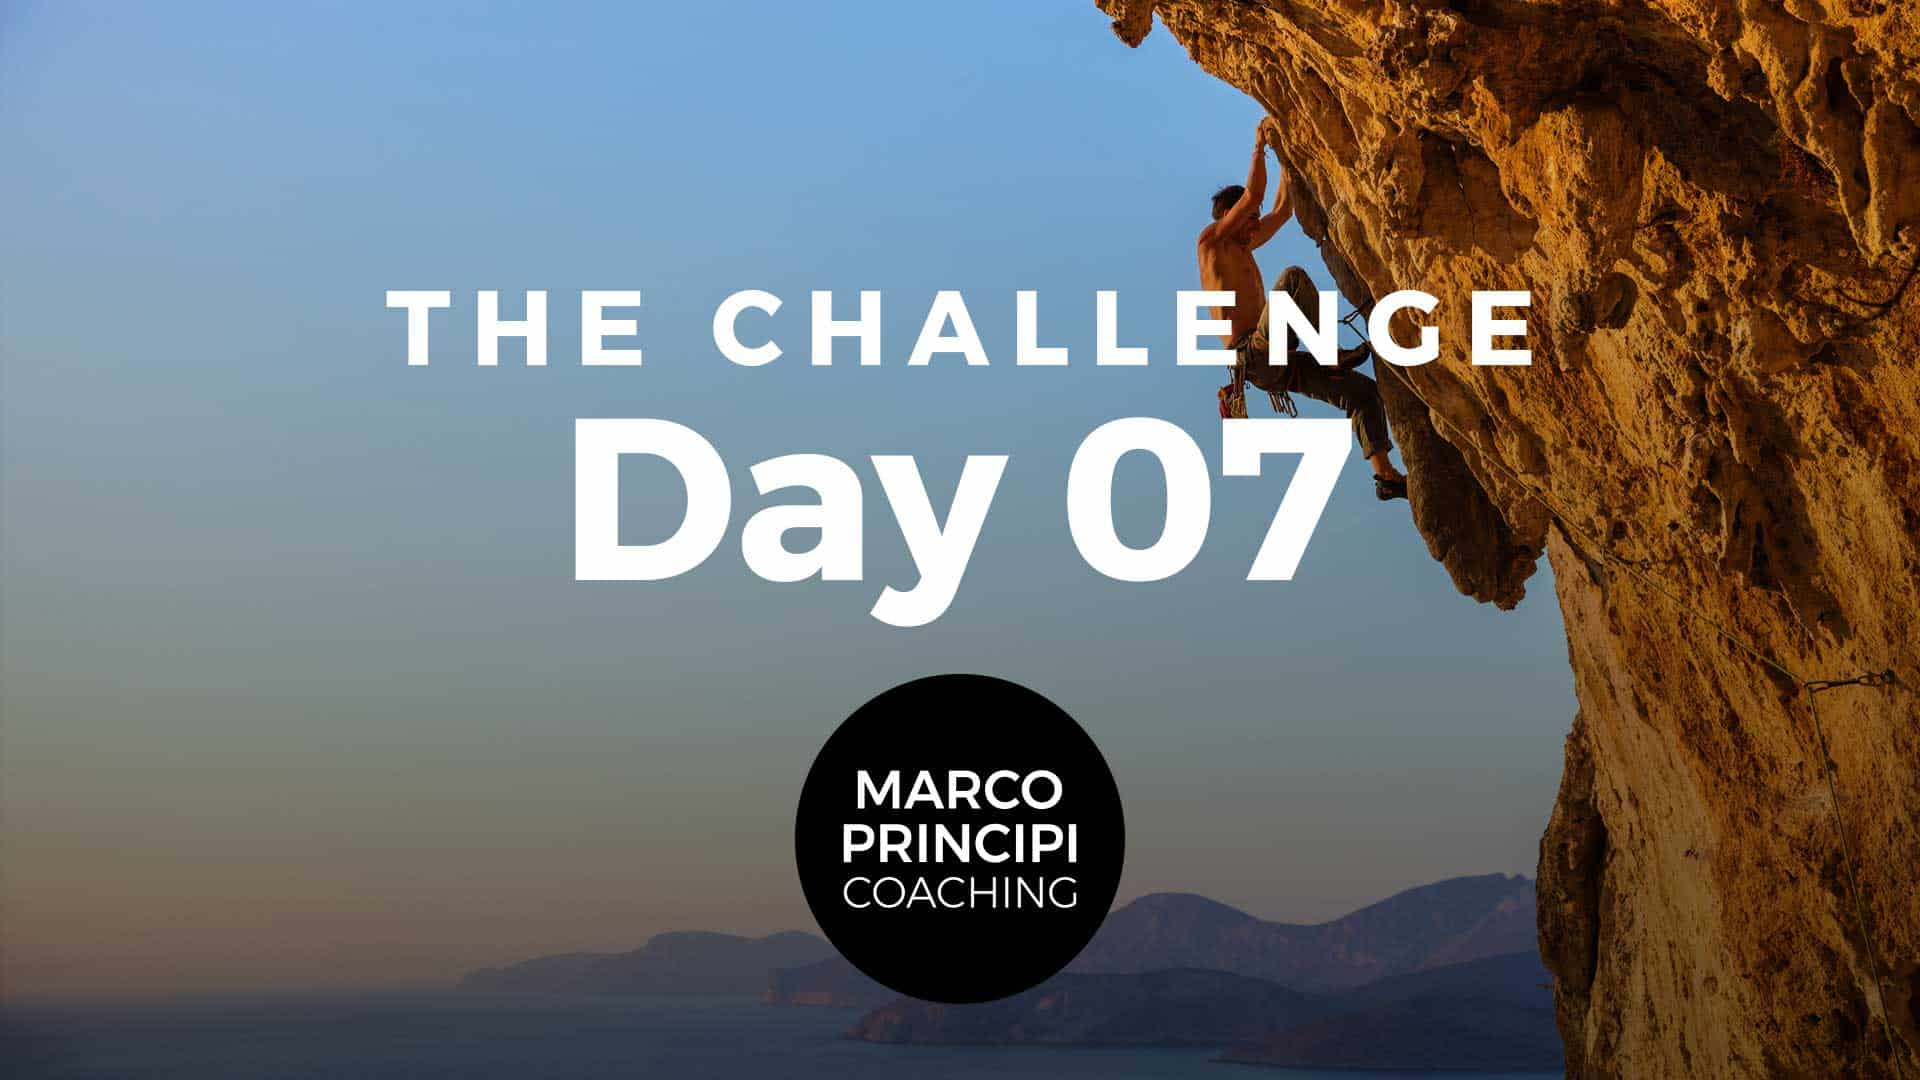 Marco Principi YT Cover The Challenge Day 007